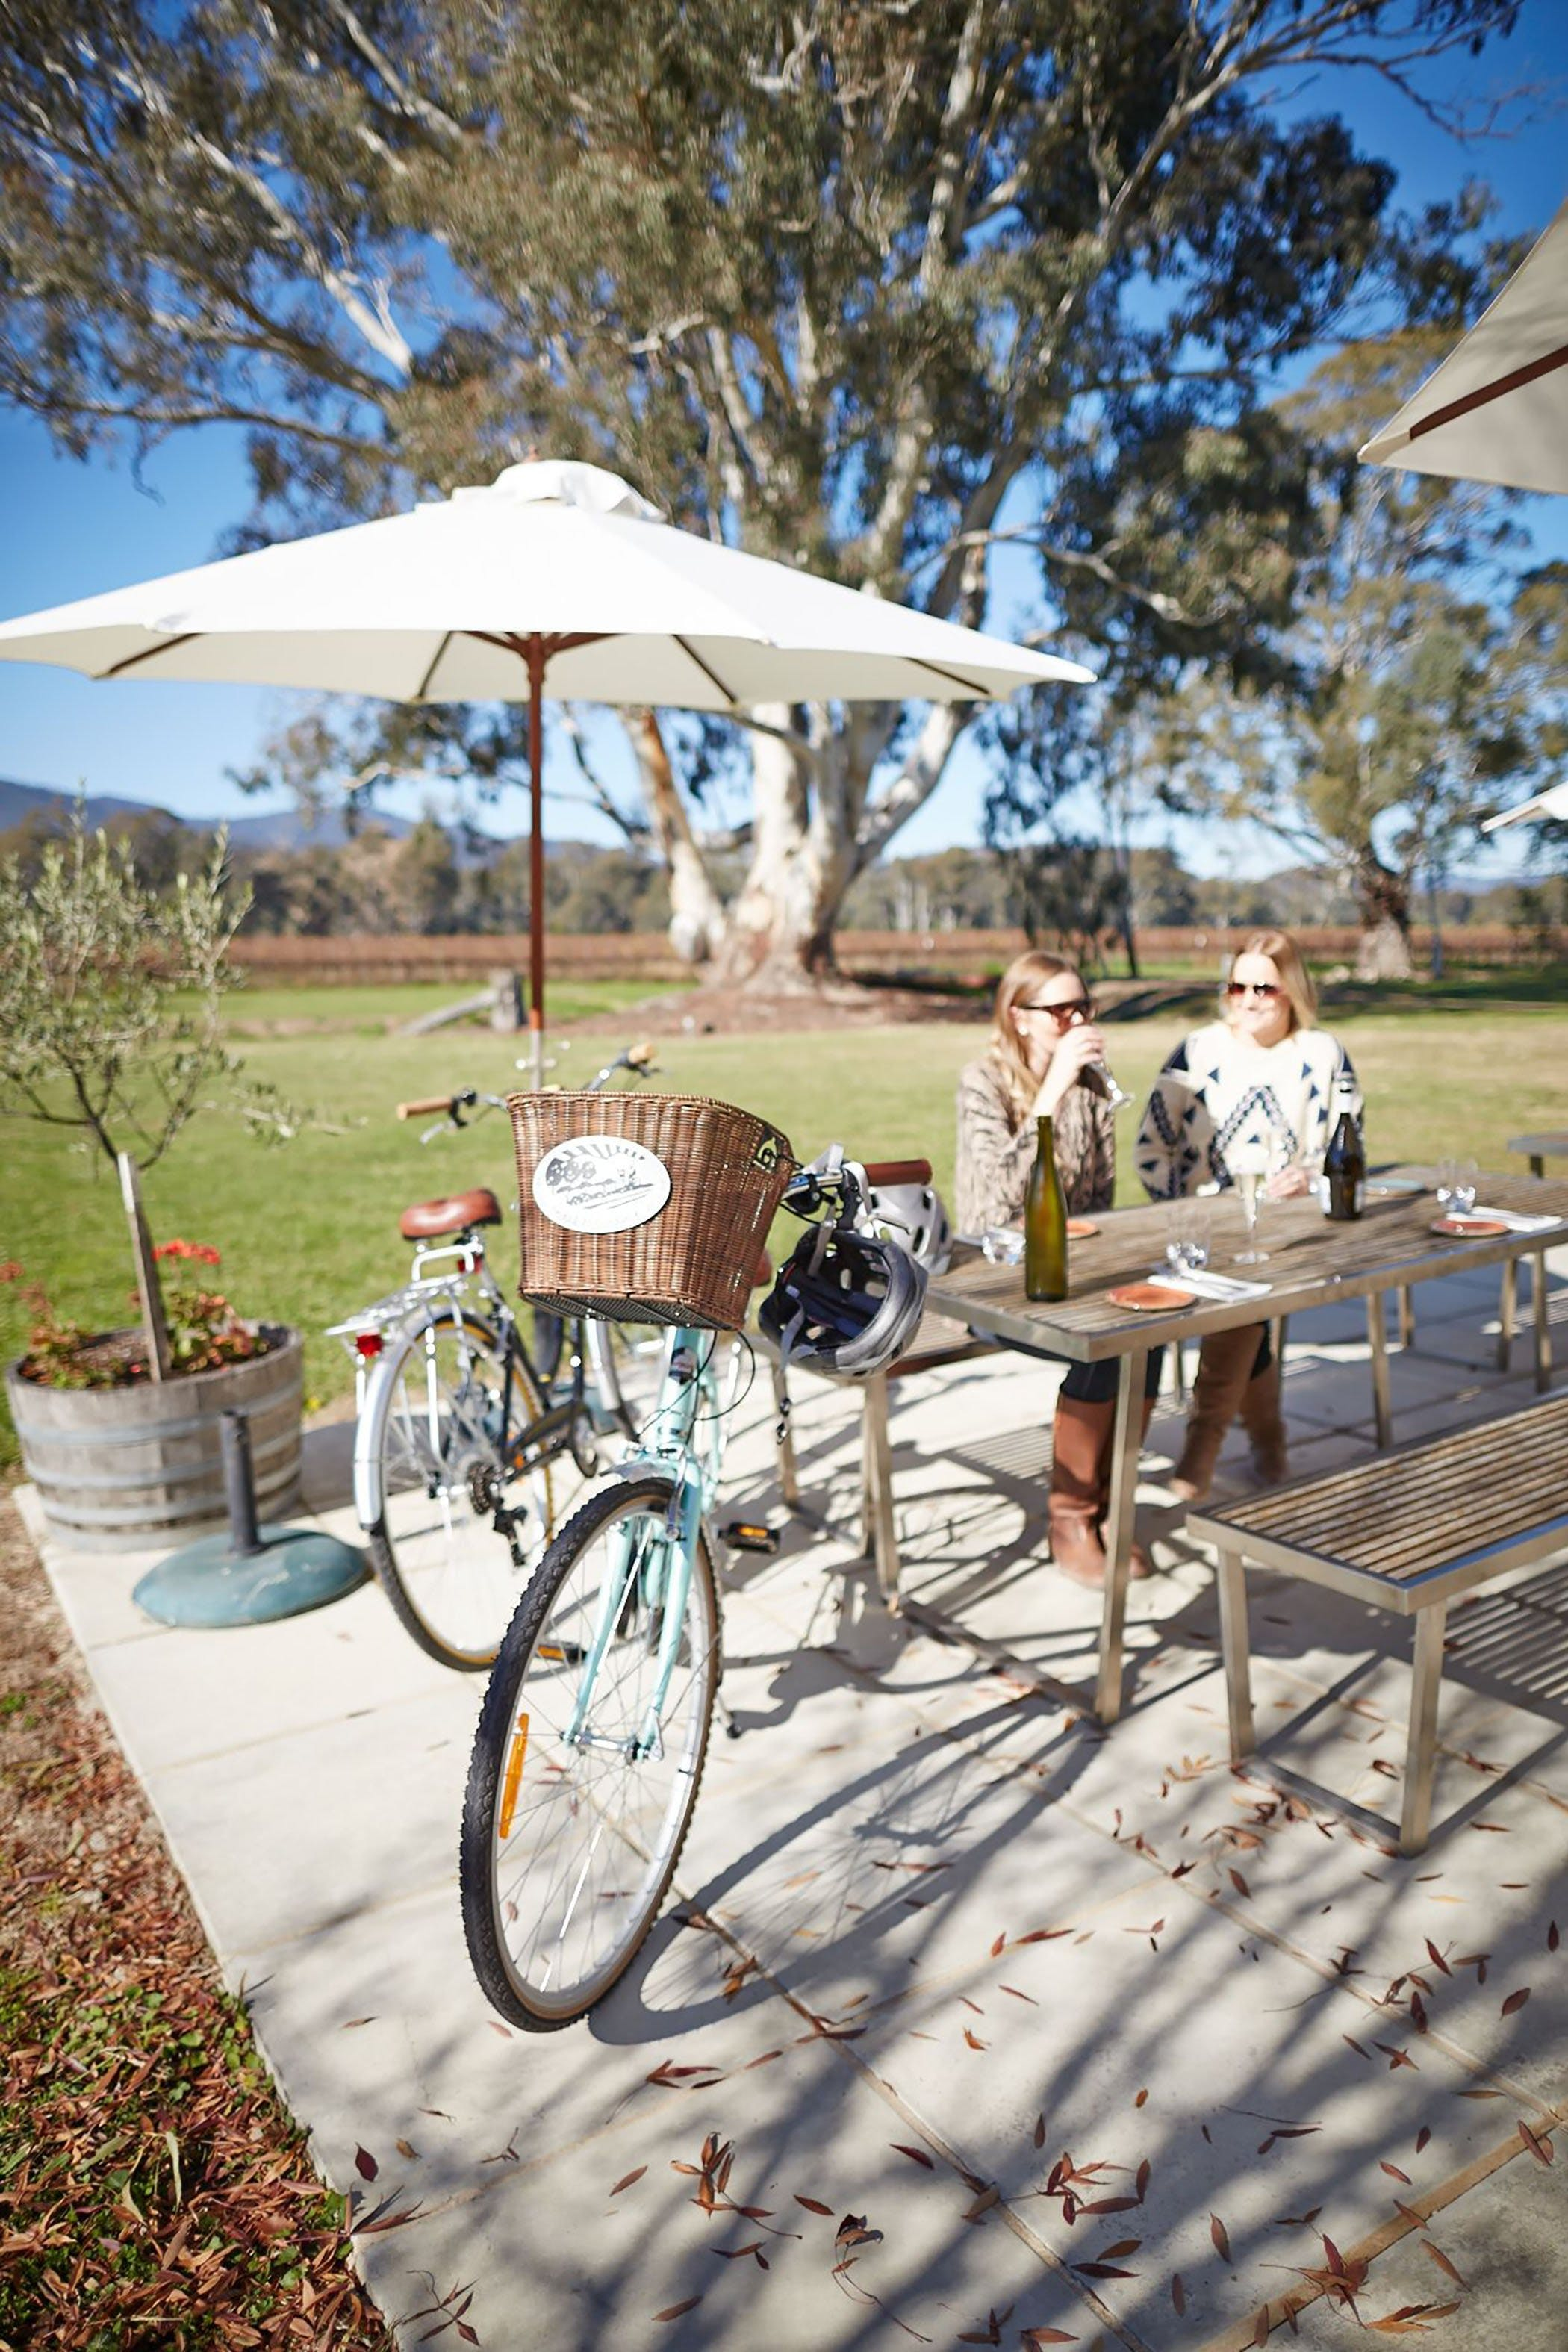 Dal Zotto Wines Cellar Door - New South Wales Tourism